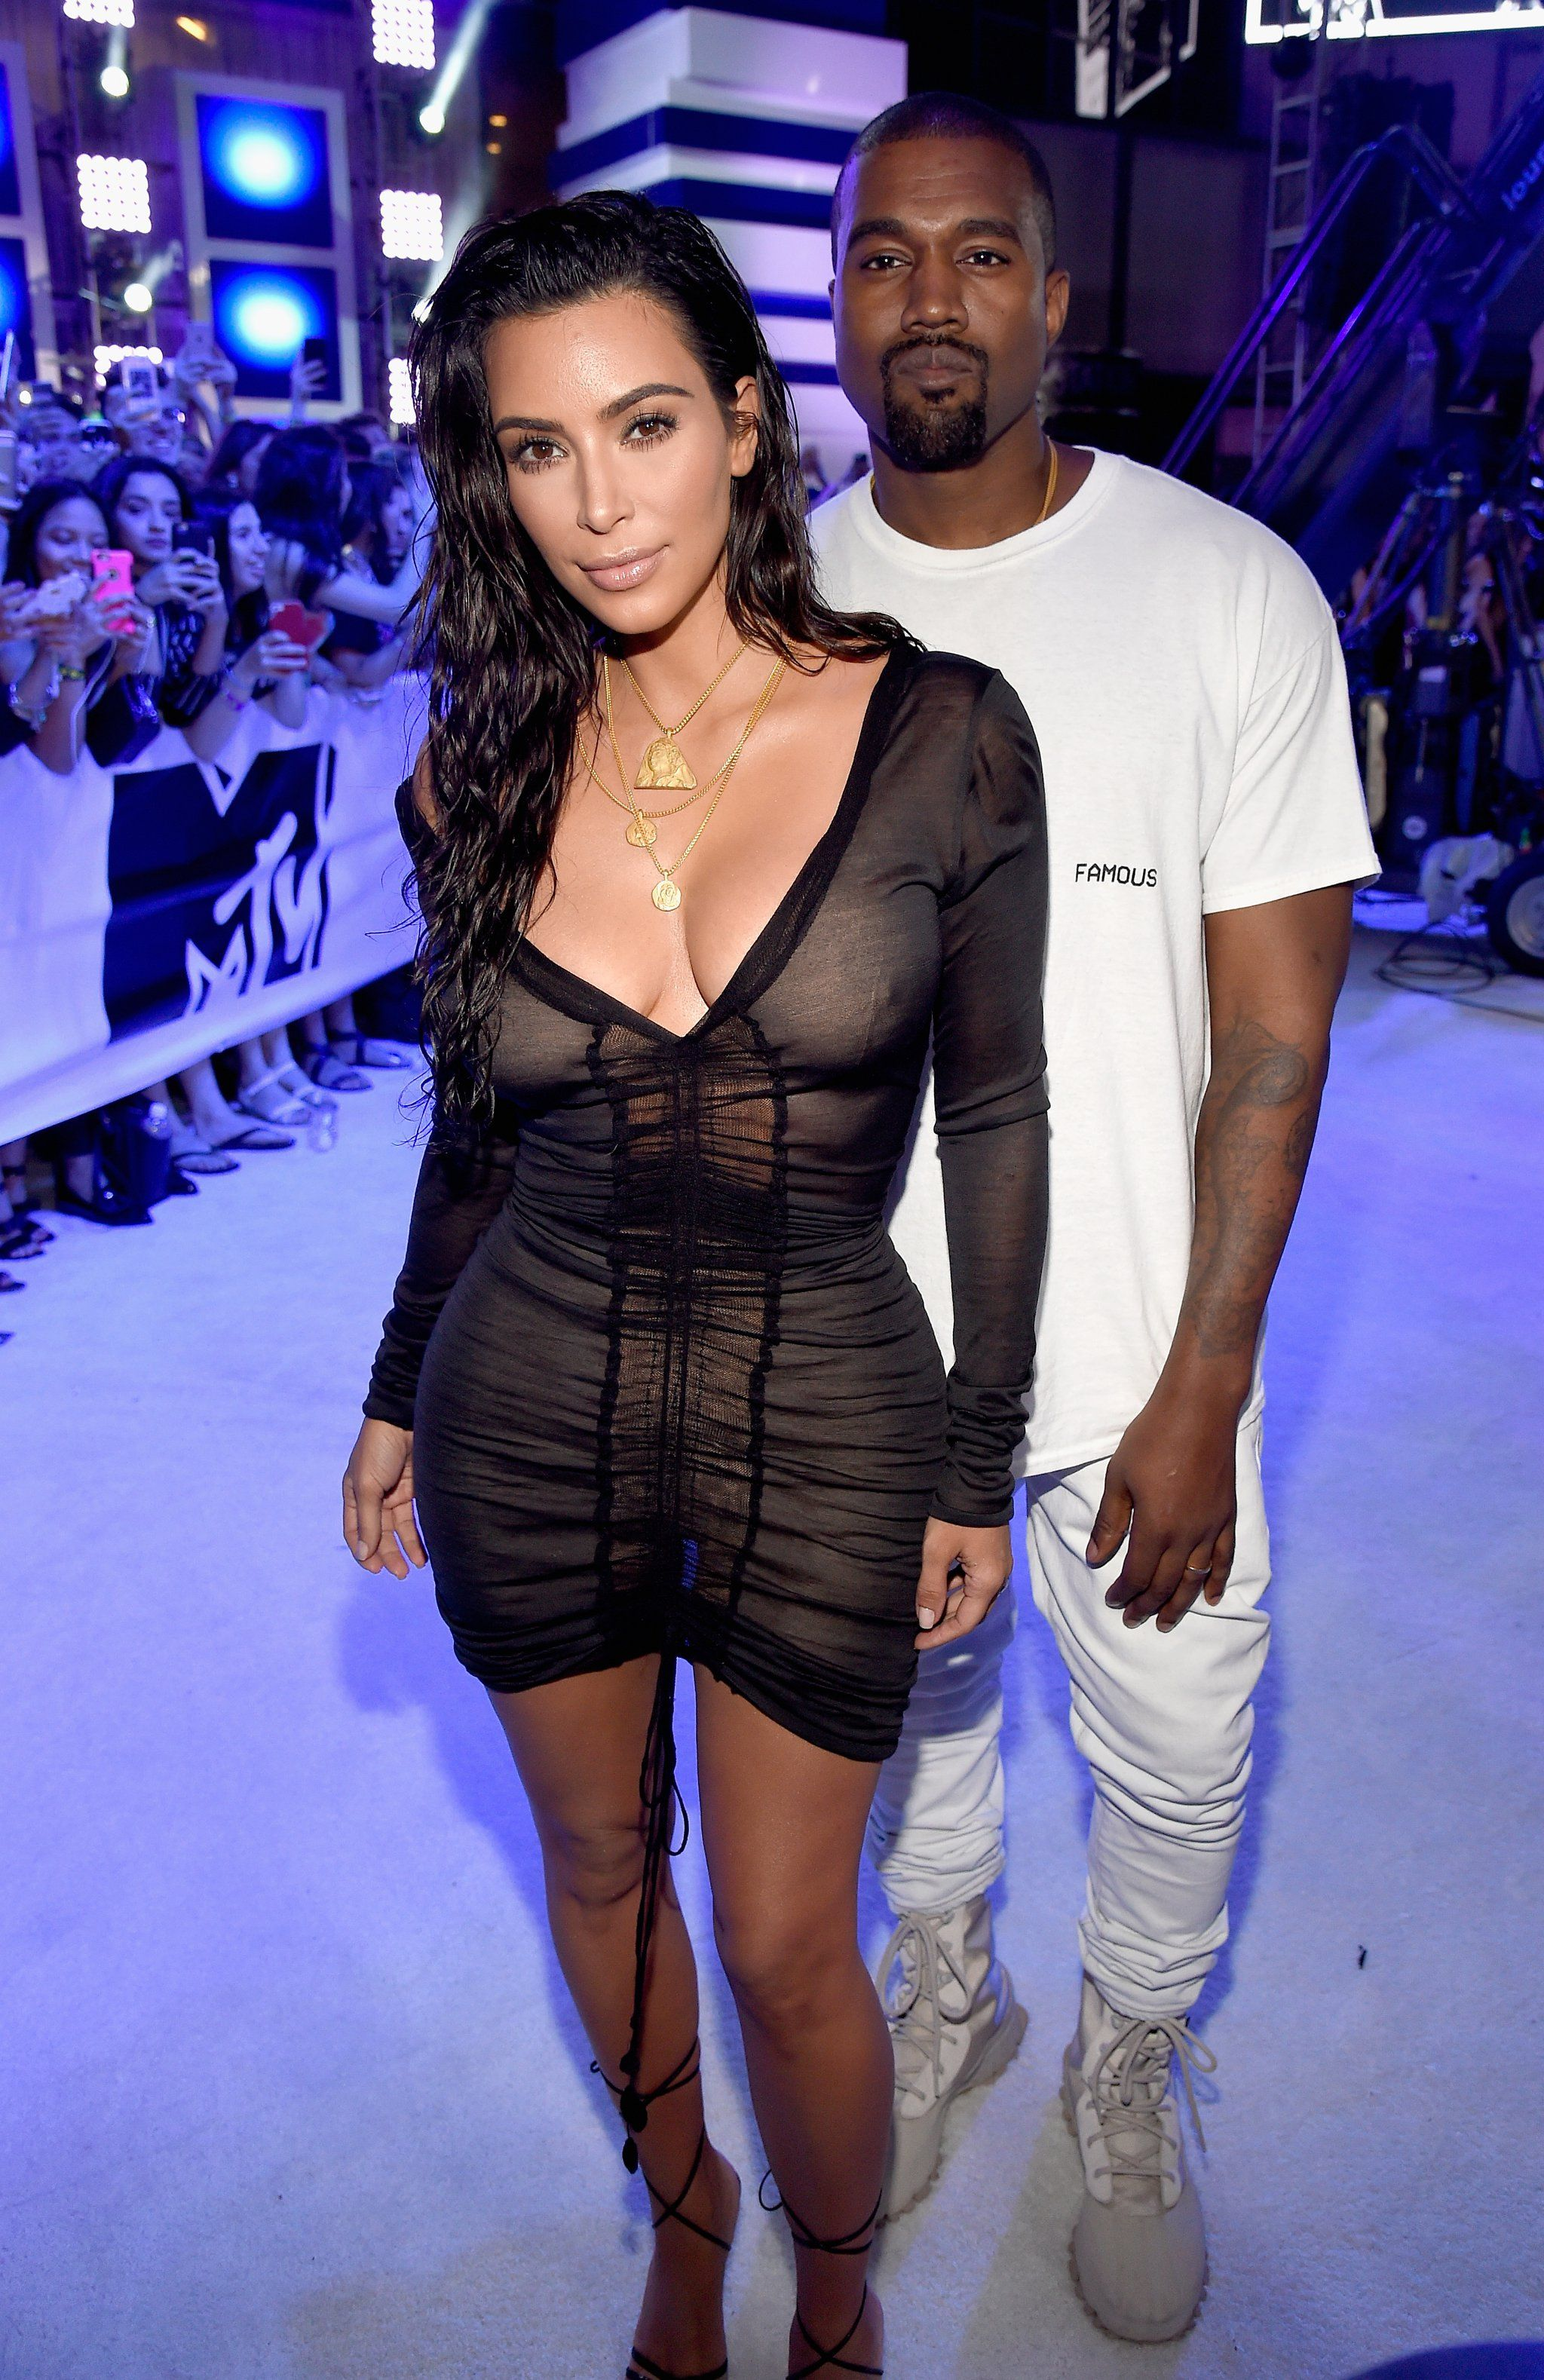 Kim Kardashian and Kanye West Were Basically Prom King and Queen at the VMAs